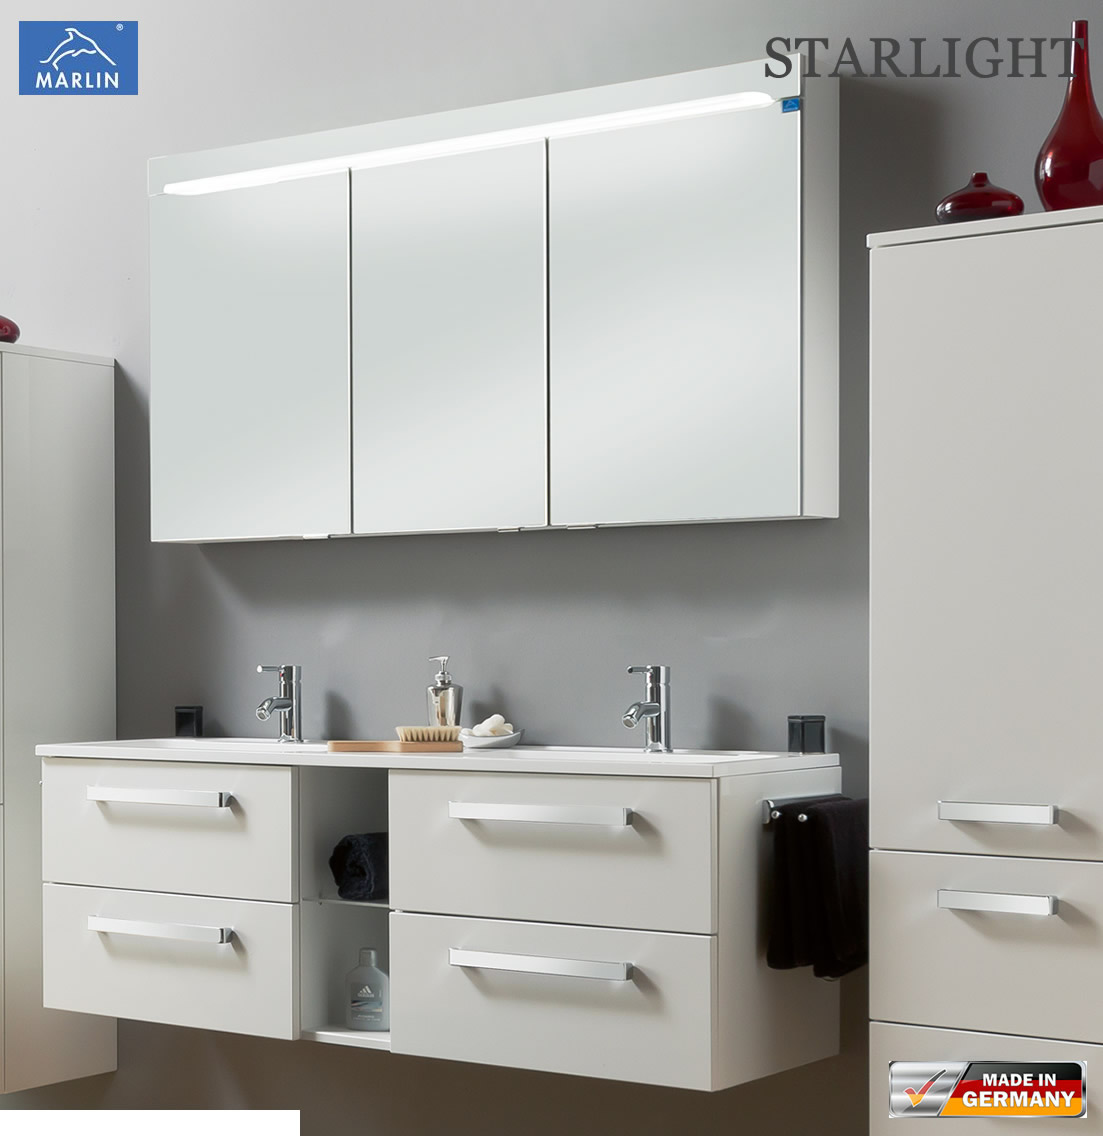 marlin starlight badm bel set 140 cm mit doppelwaschtisch. Black Bedroom Furniture Sets. Home Design Ideas